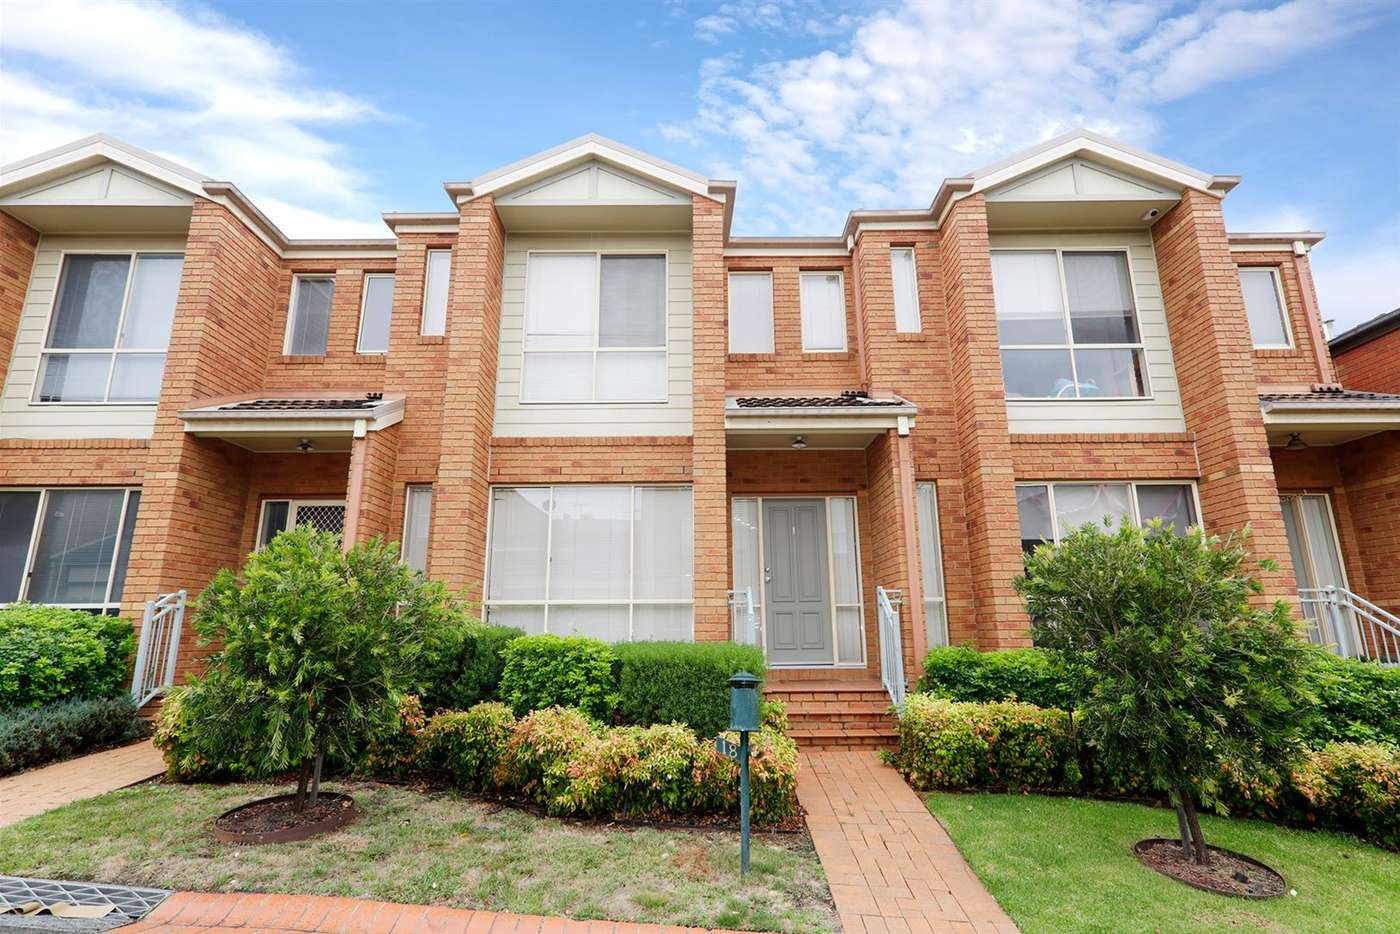 Main view of Homely house listing, 18 Larkspur Circuit, Glen Waverley VIC 3150